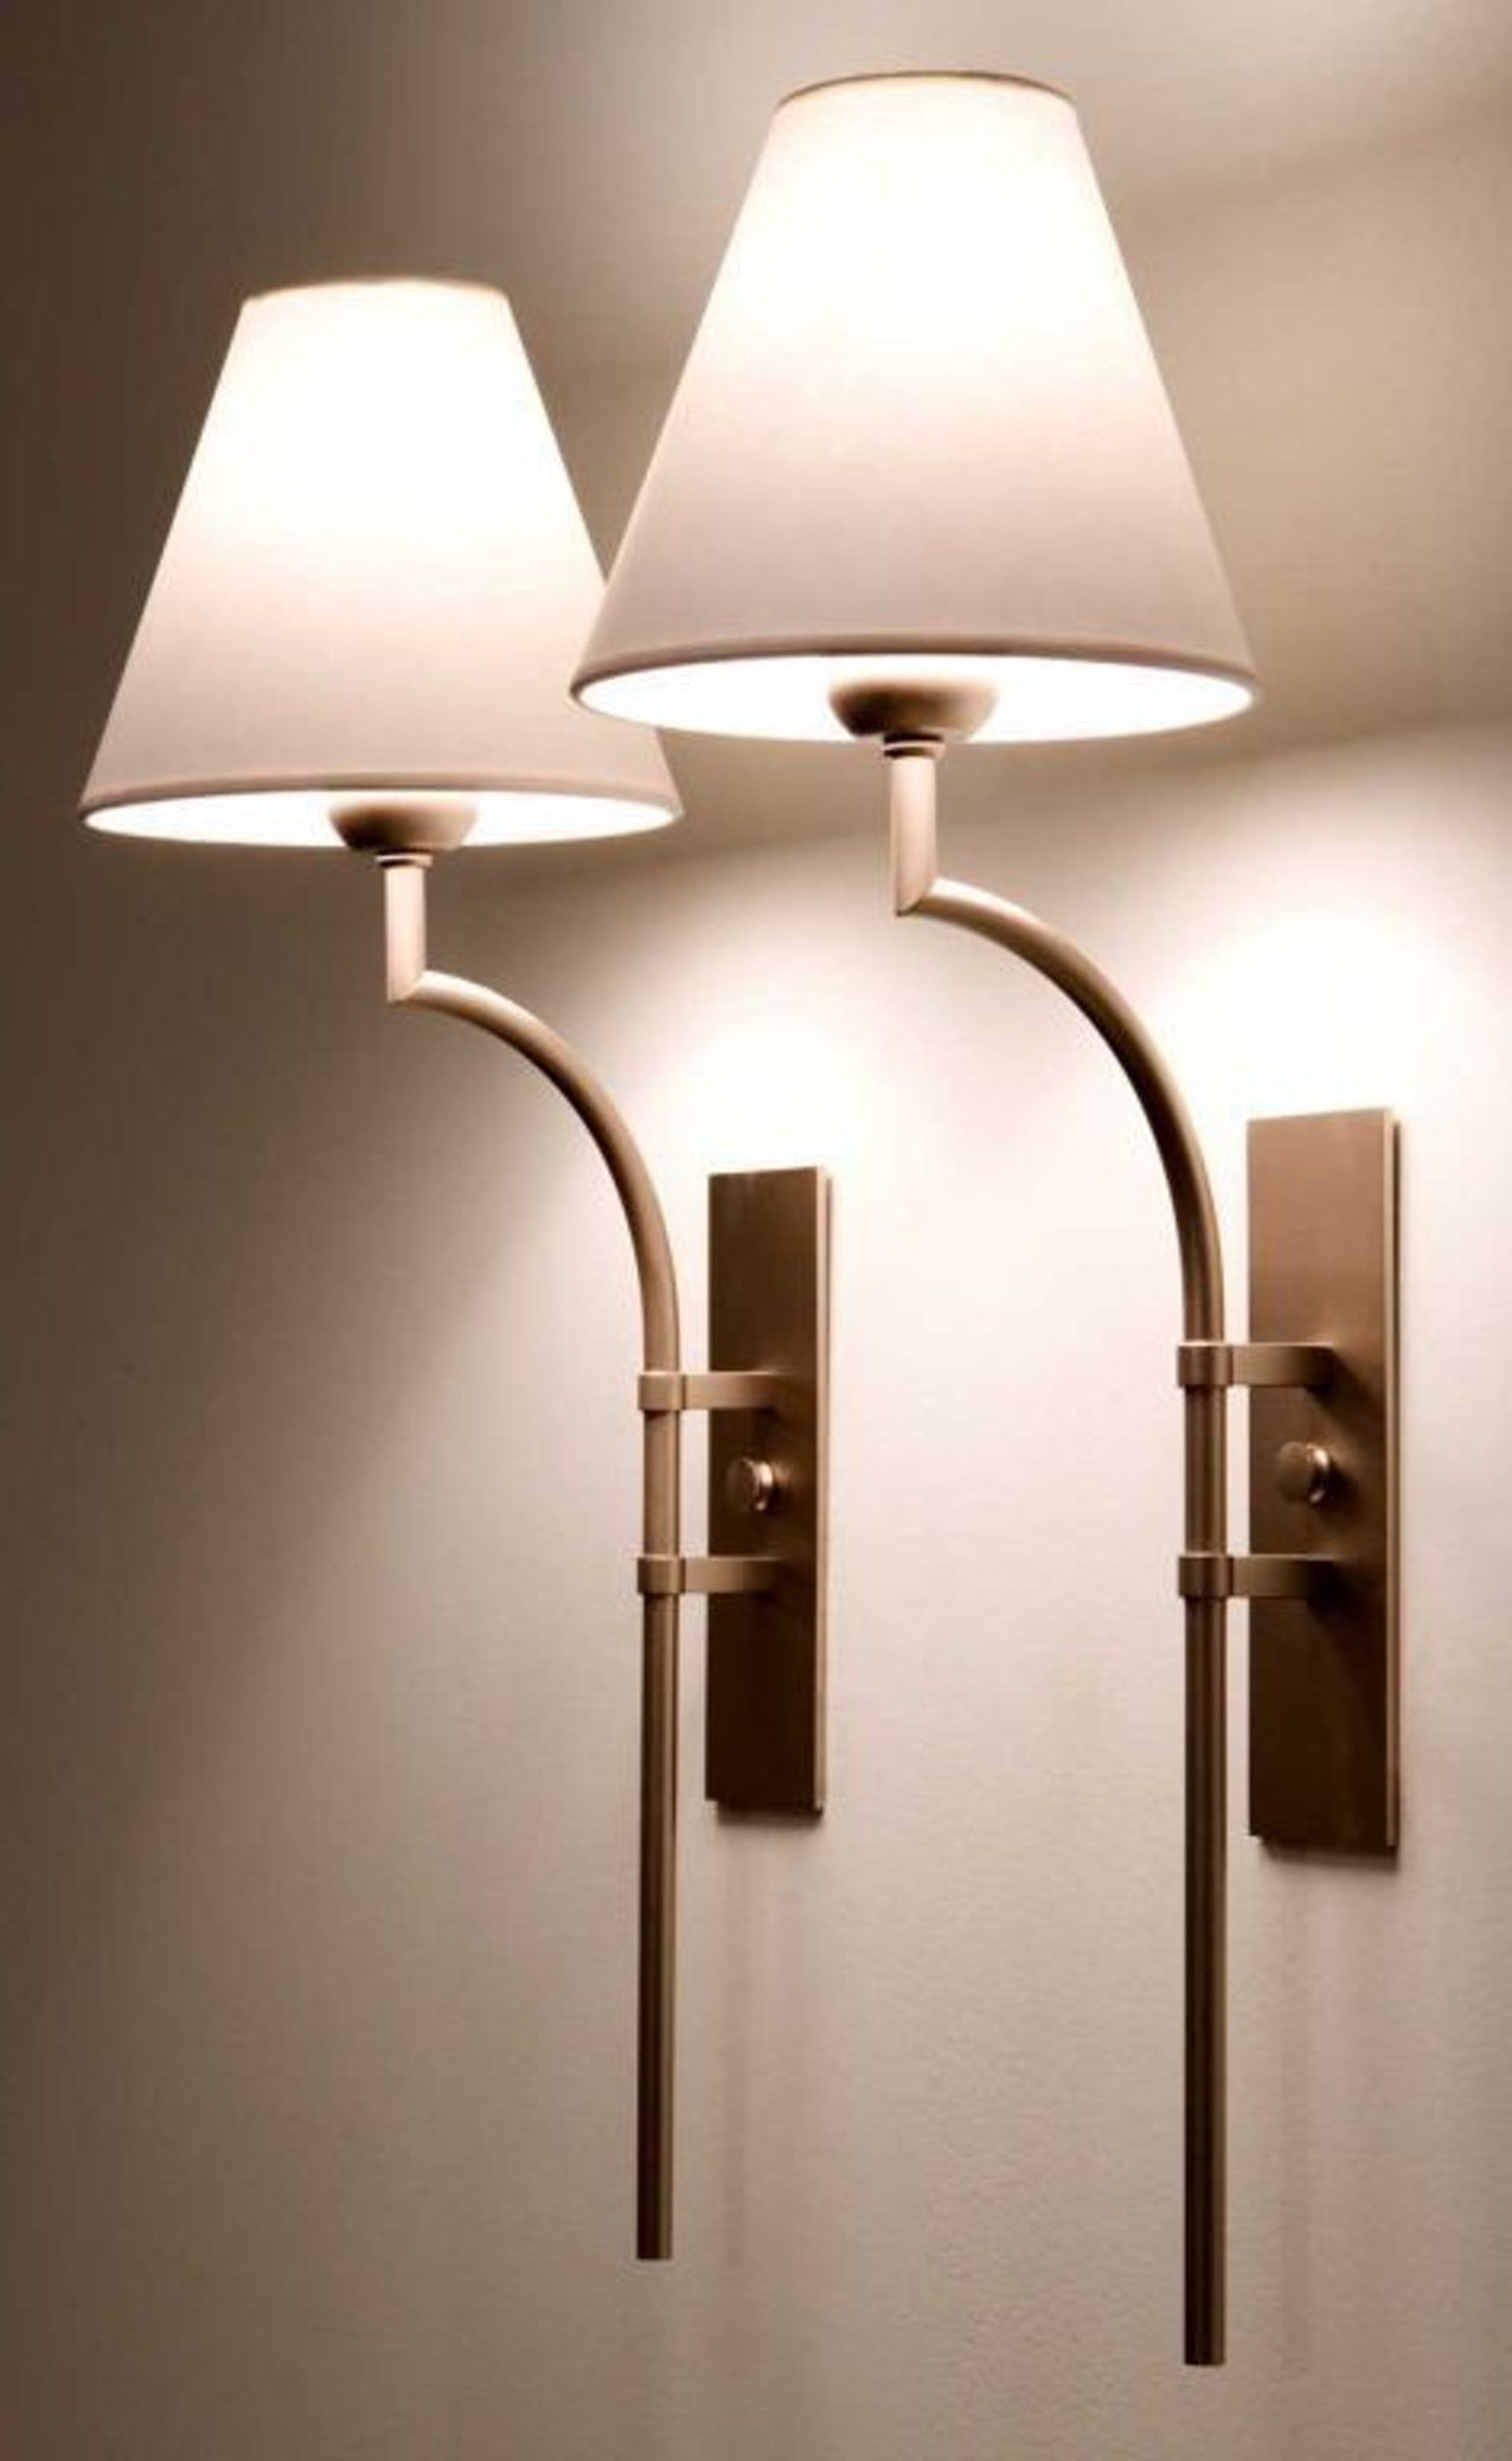 Wall Sconce Contemporary Traditional Transitional Wall